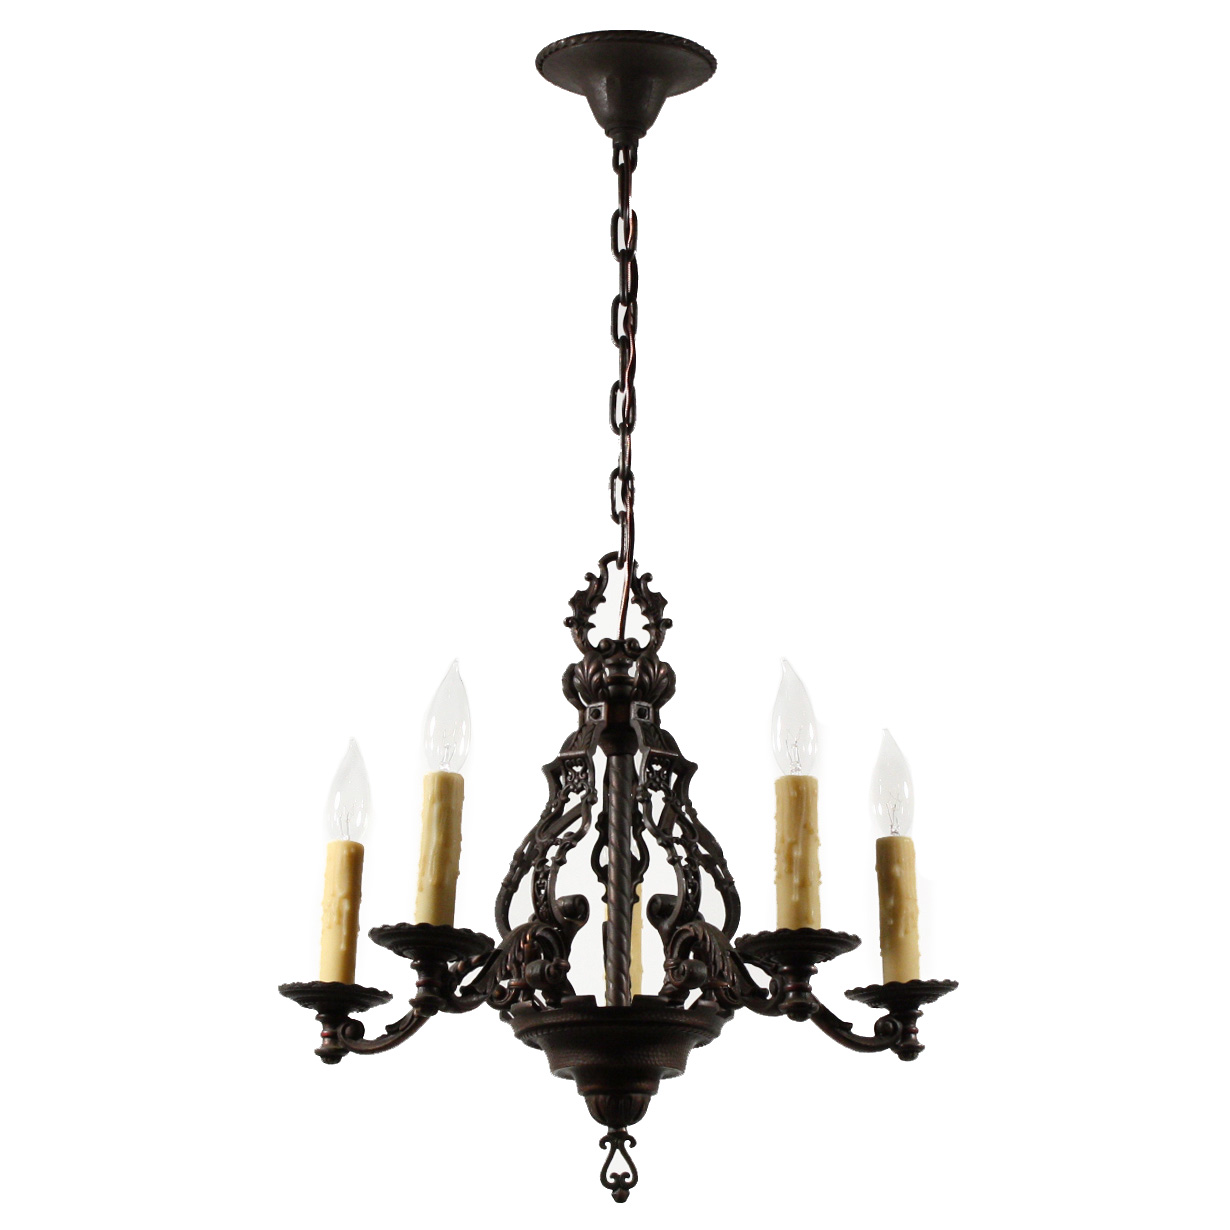 Magnificent antique figural five light chandelier cast iron early 1900s nc1513 for sale - Lighting and chandeliers ...